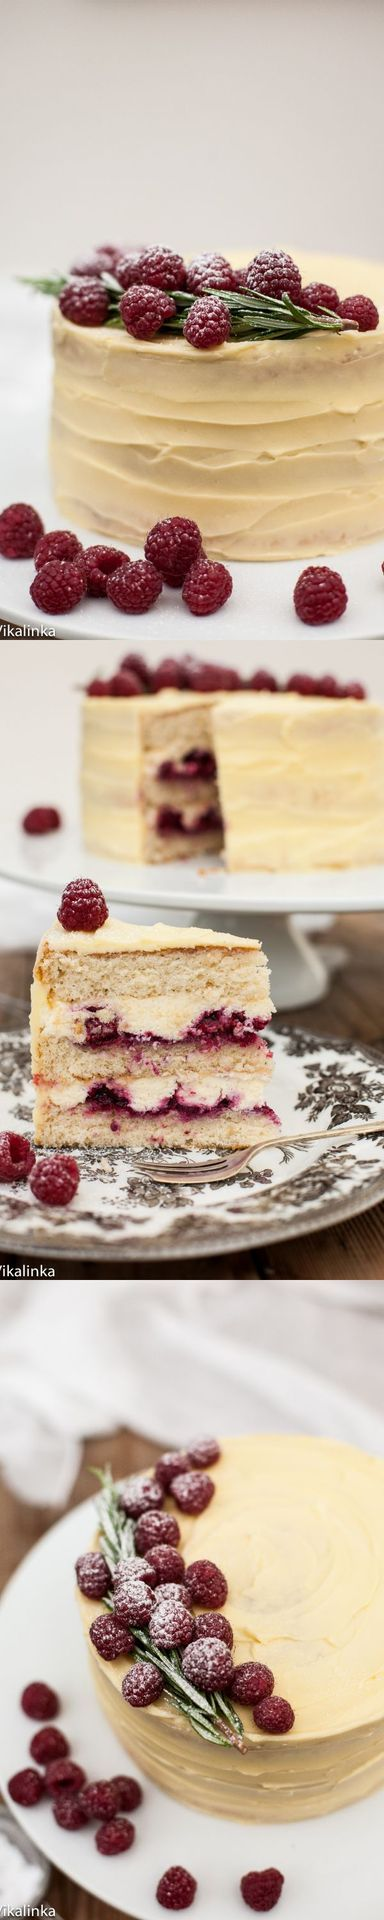 Delicate vanilla cake layers filled with mascarpone cream and raspberry compote and covered with white chocolate buttercream. - Irene Easter Food Photo